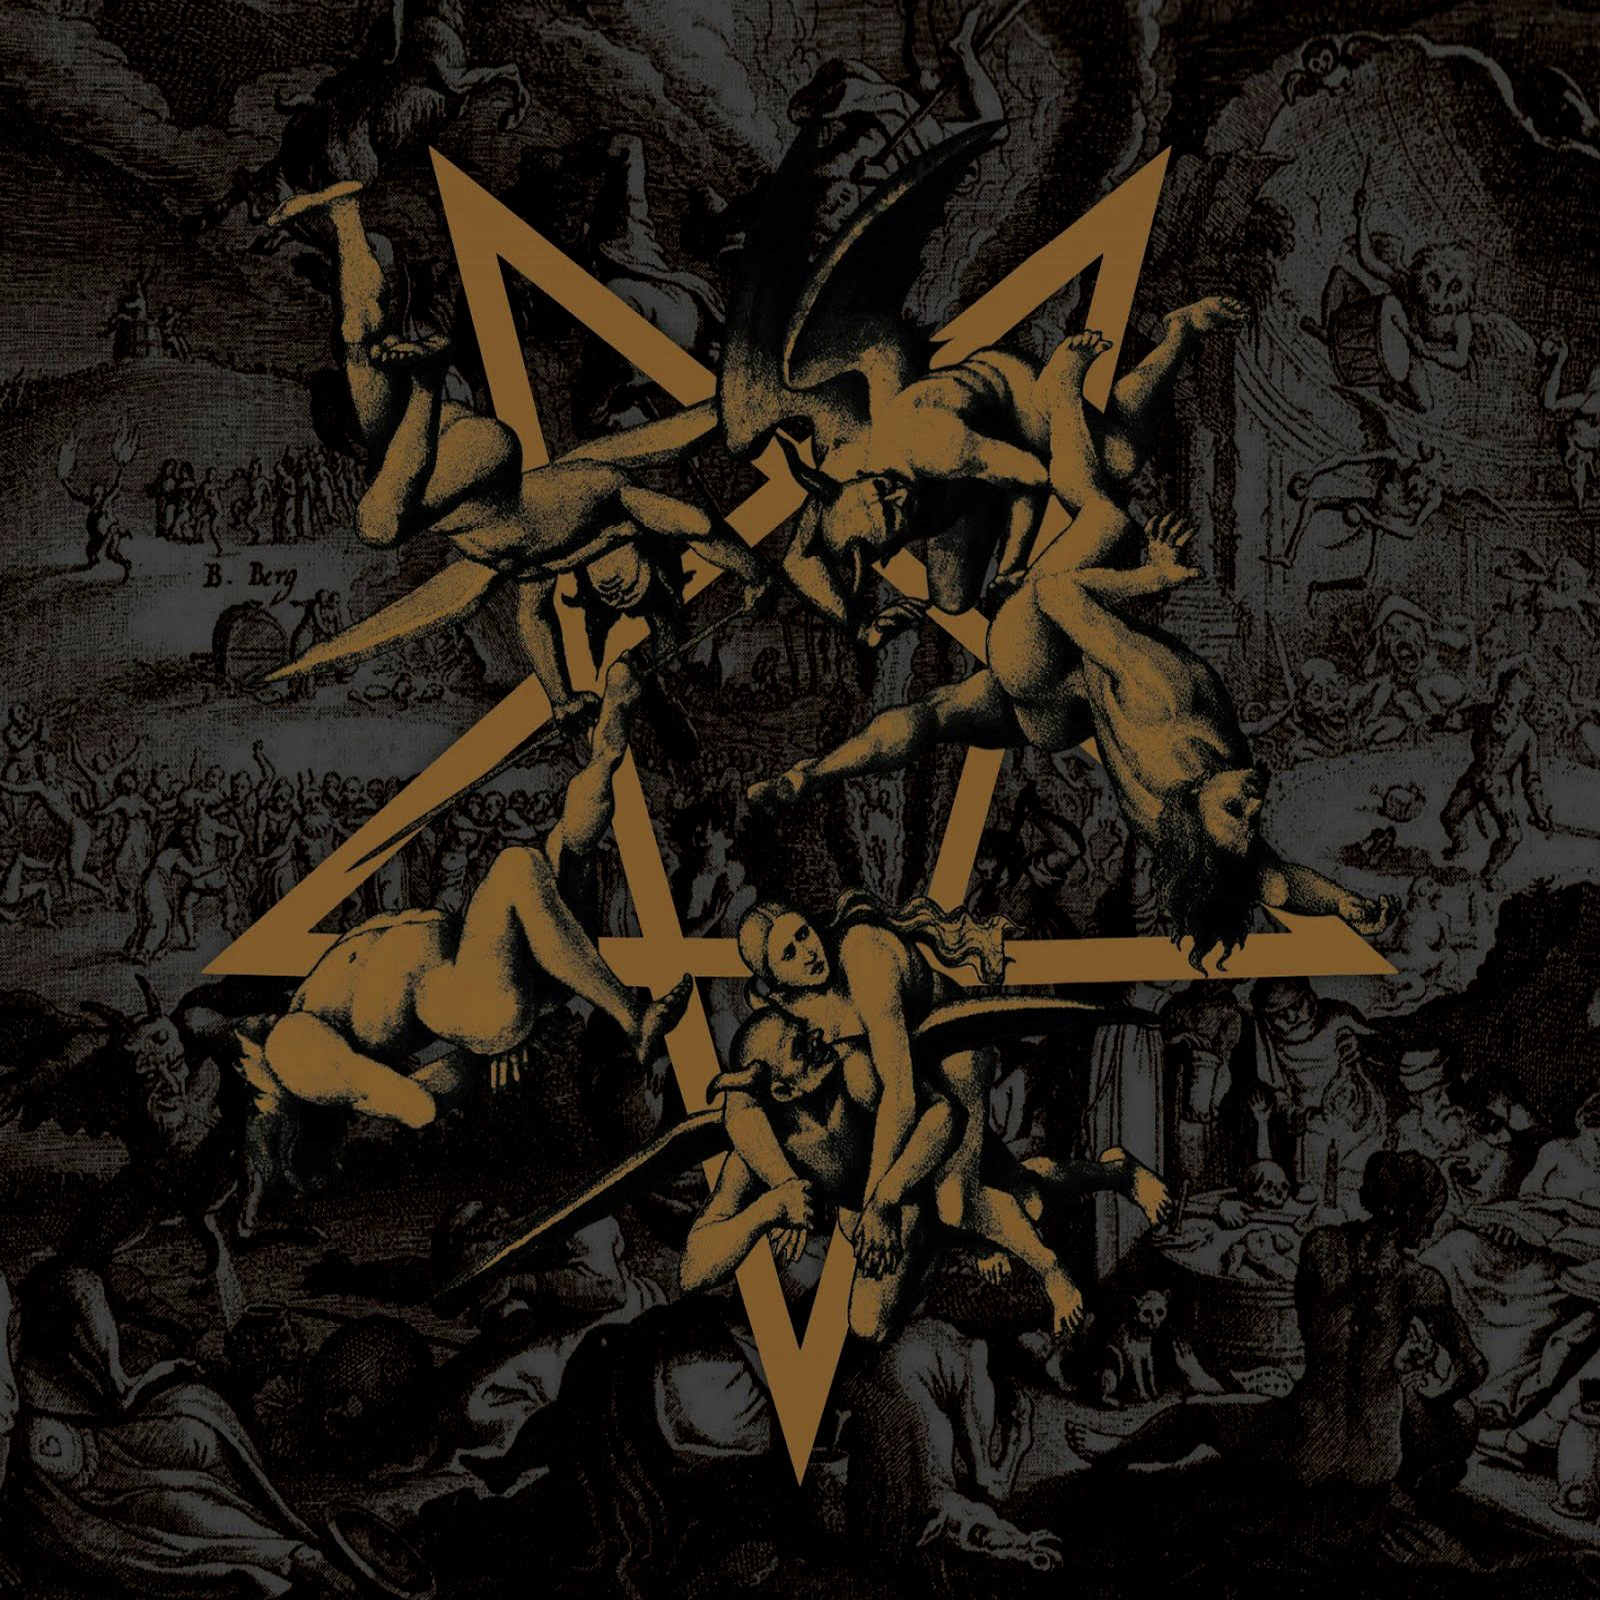 Reviews for Abigor - Four Keys to a Foul Reich (Songs of Pestilence, Darkness and Death)